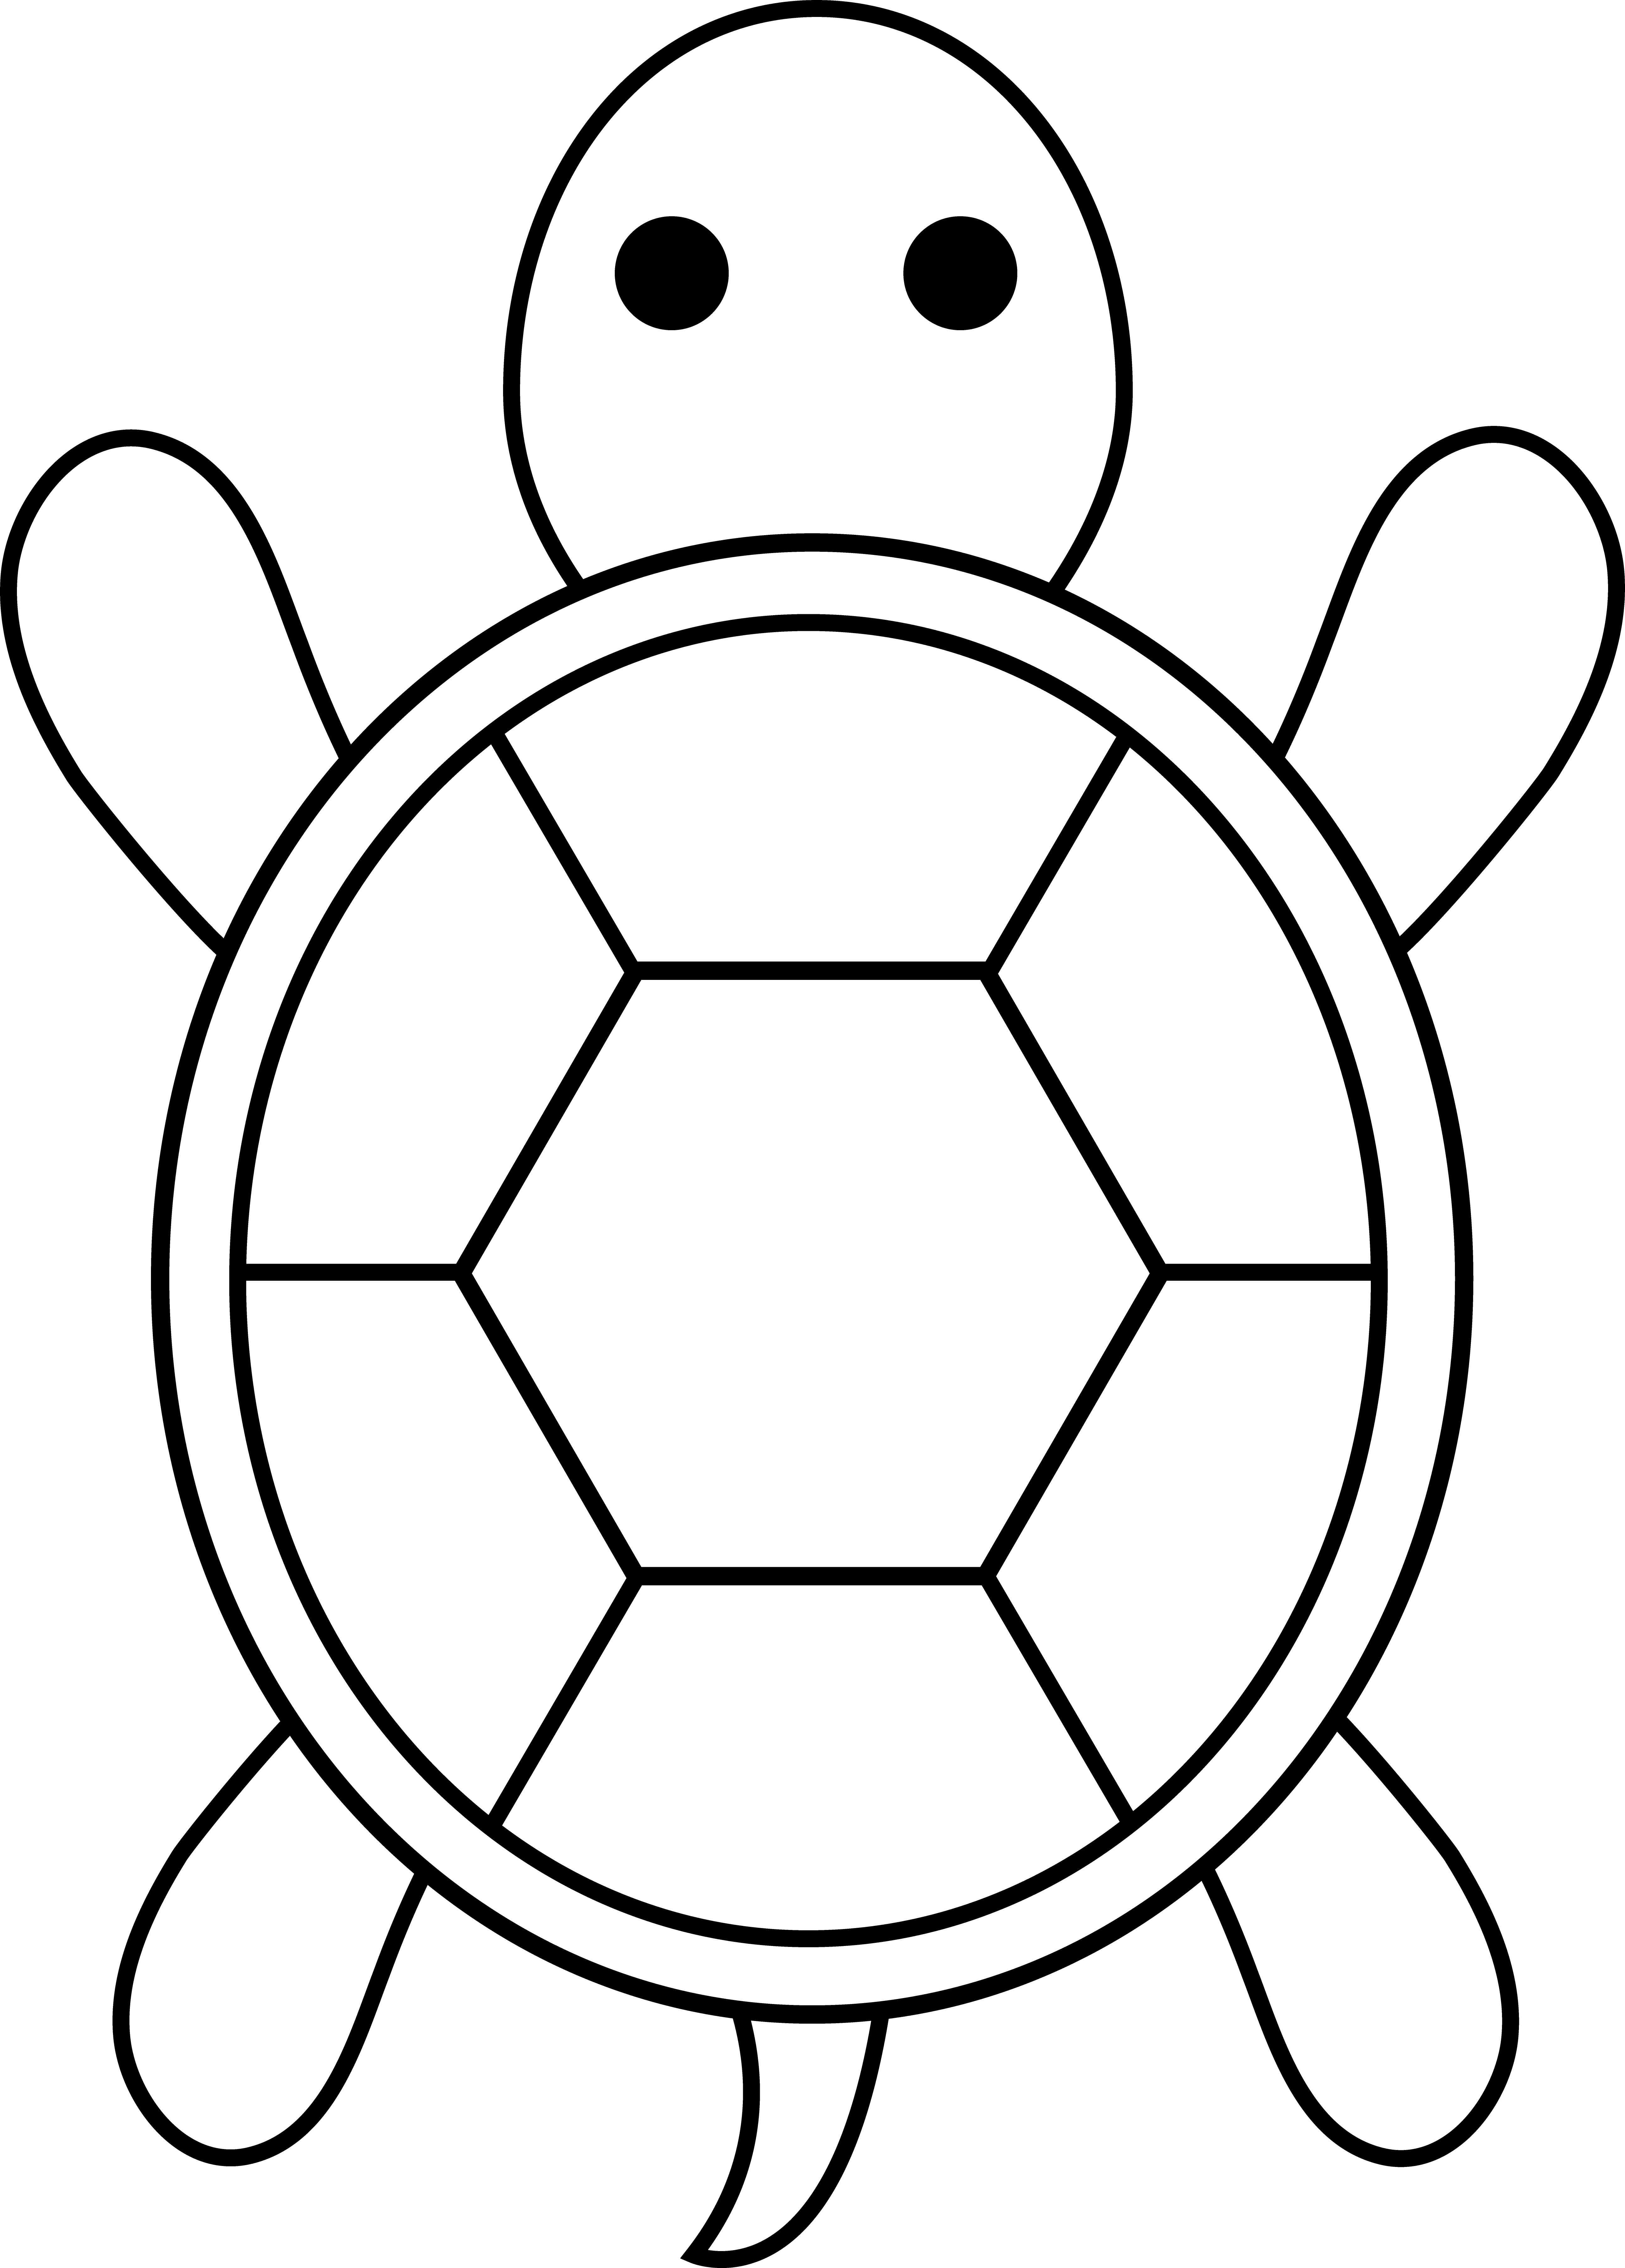 Easy Turtle Outline